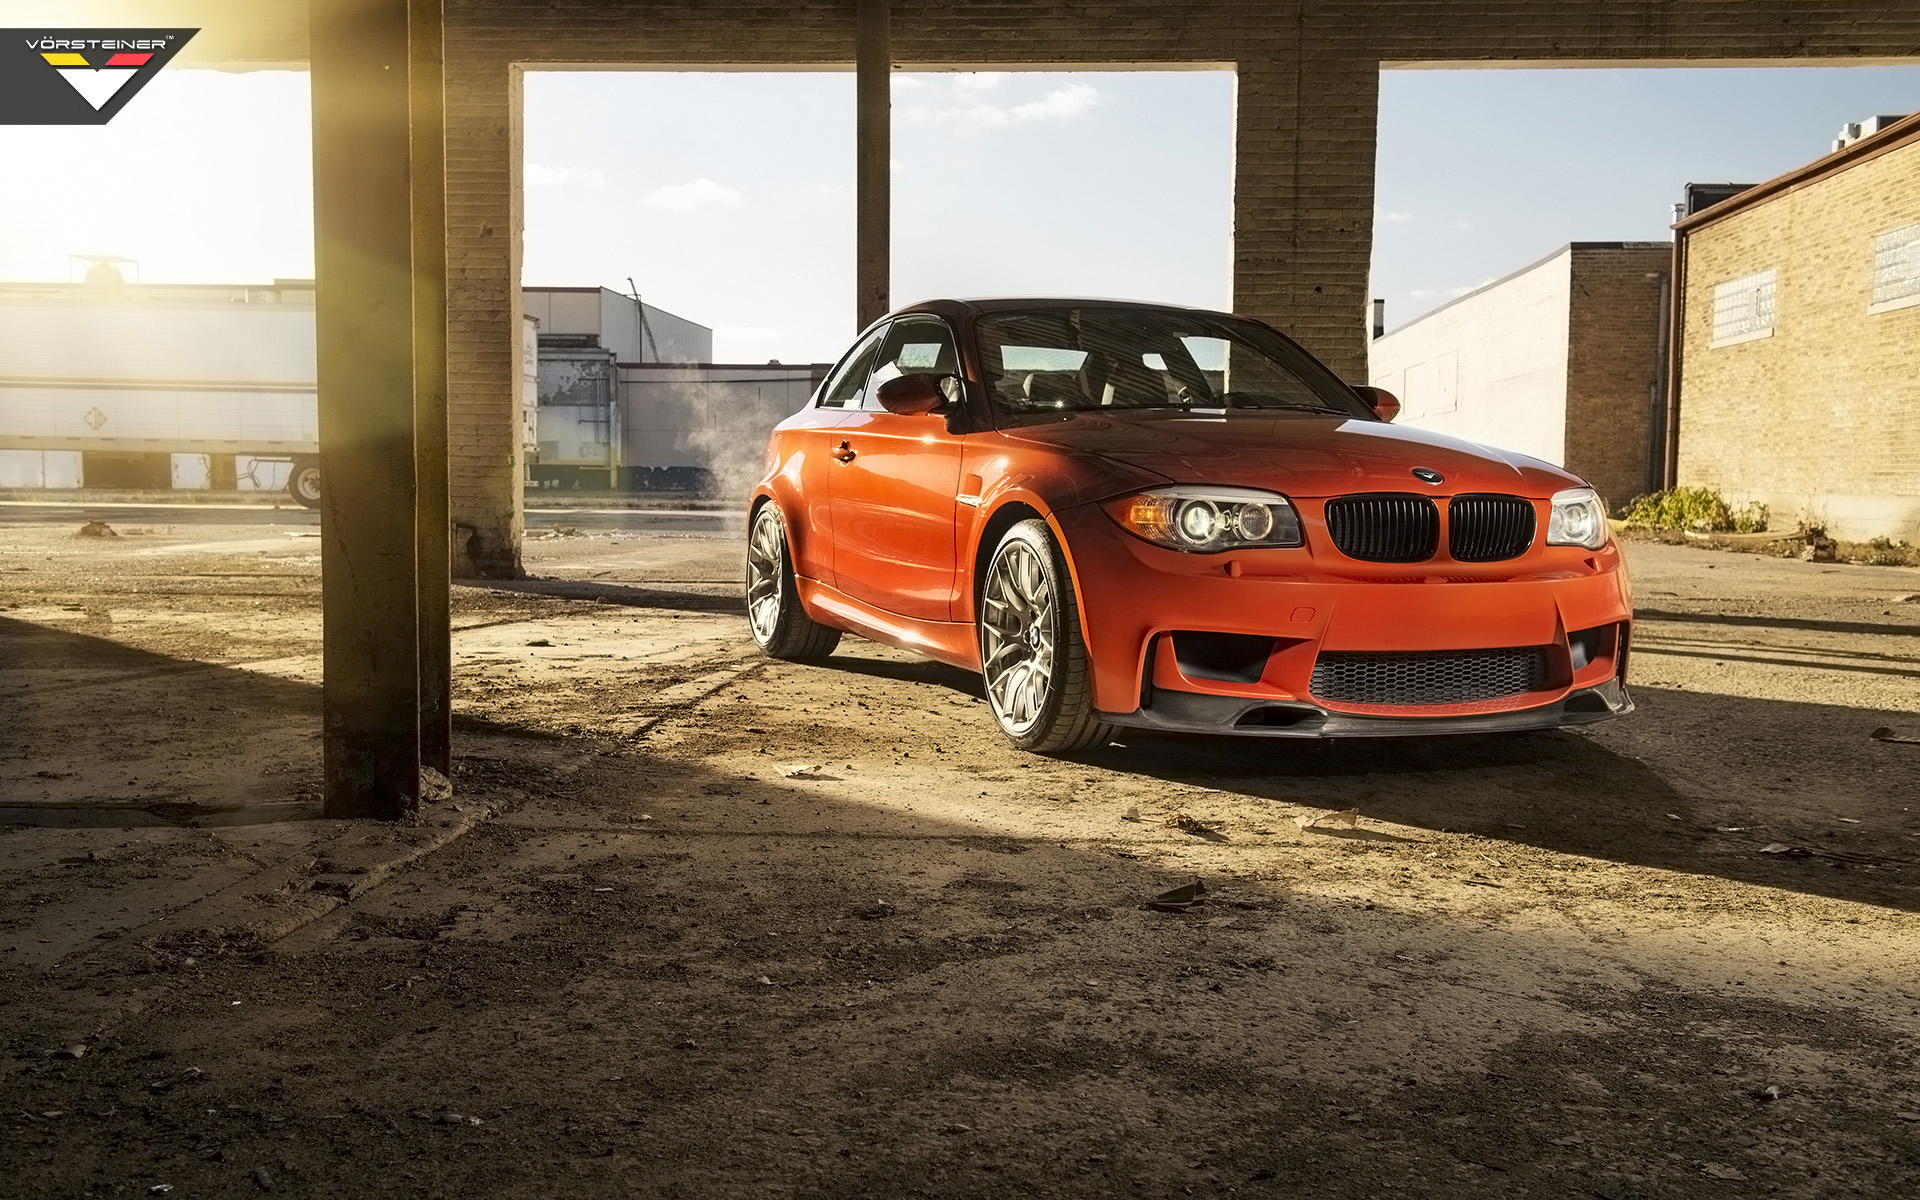 Vorsteiner BMW E82 1M Coupe 2014Related Car Wallpapers wallpaper 1920x1200